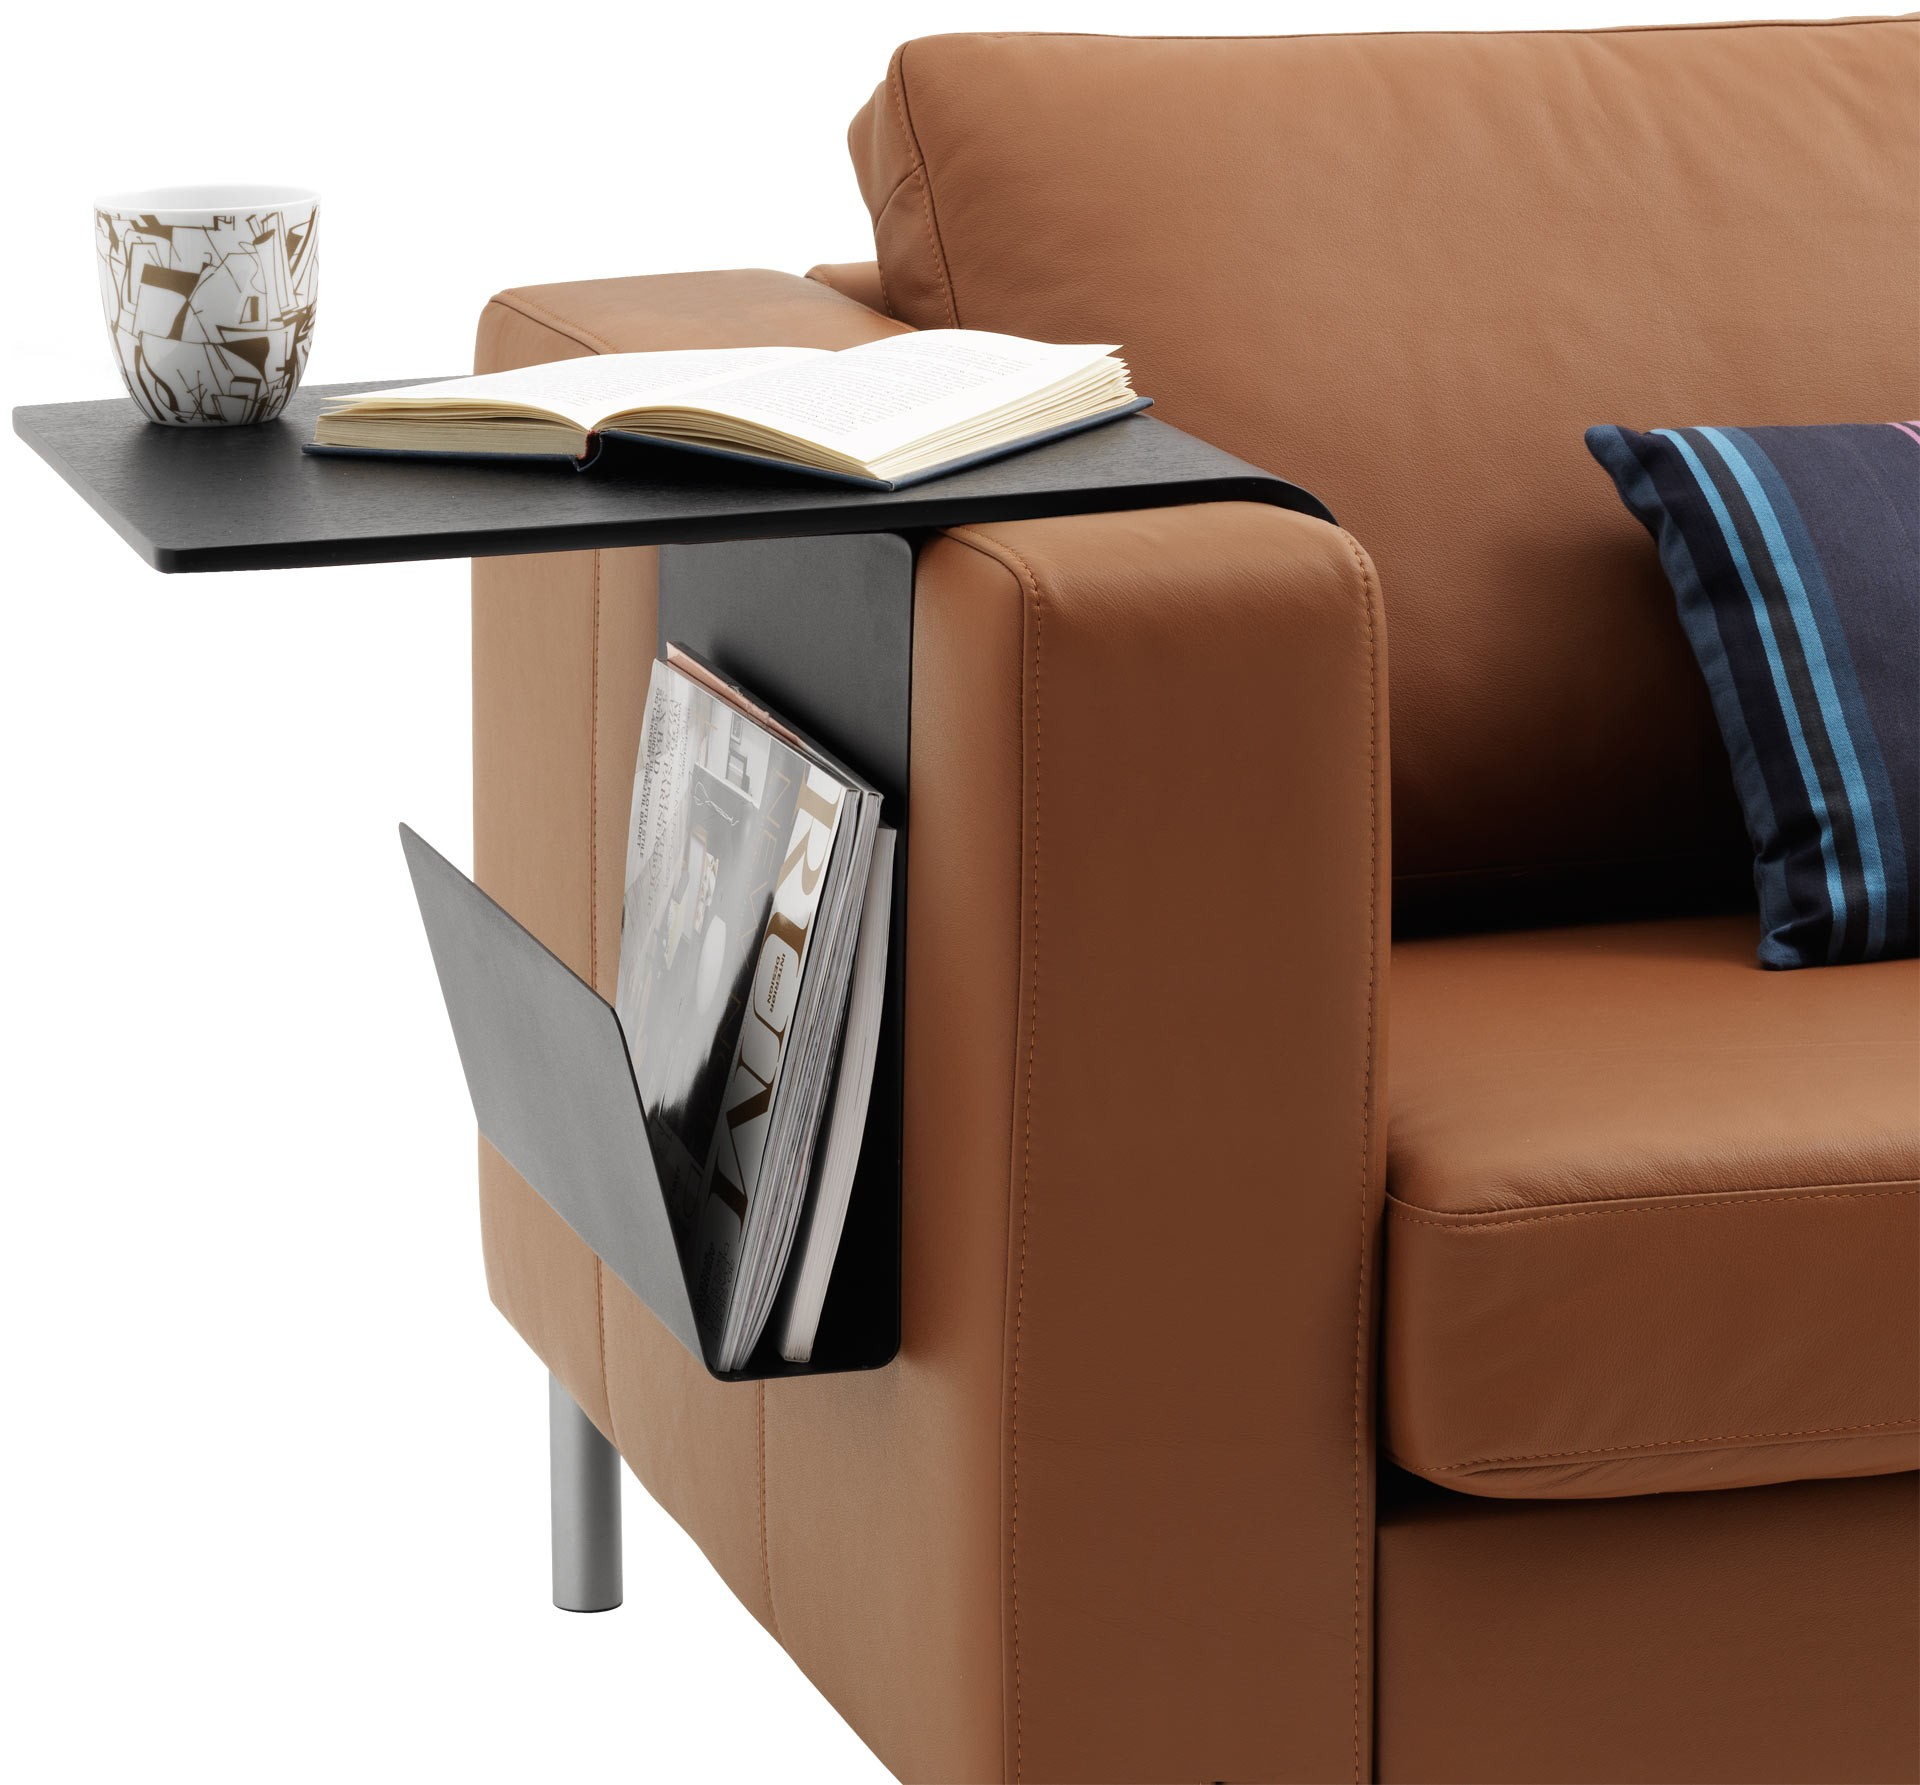 chair arm table attachment slip cover and ottoman sofa tray ideas on foter couch wrap